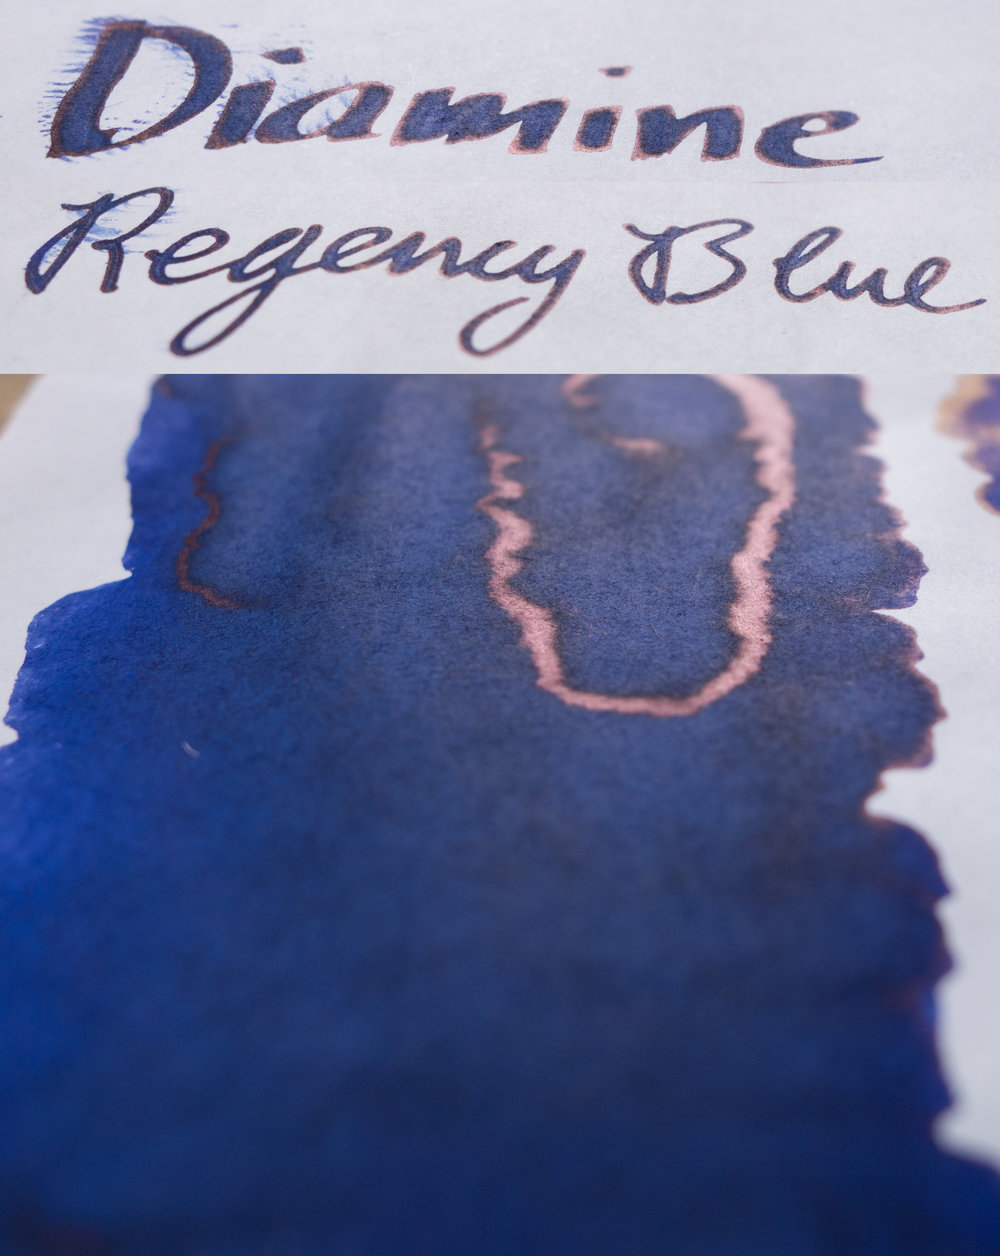 Diamine Regency Blue Sheen Card.jpg